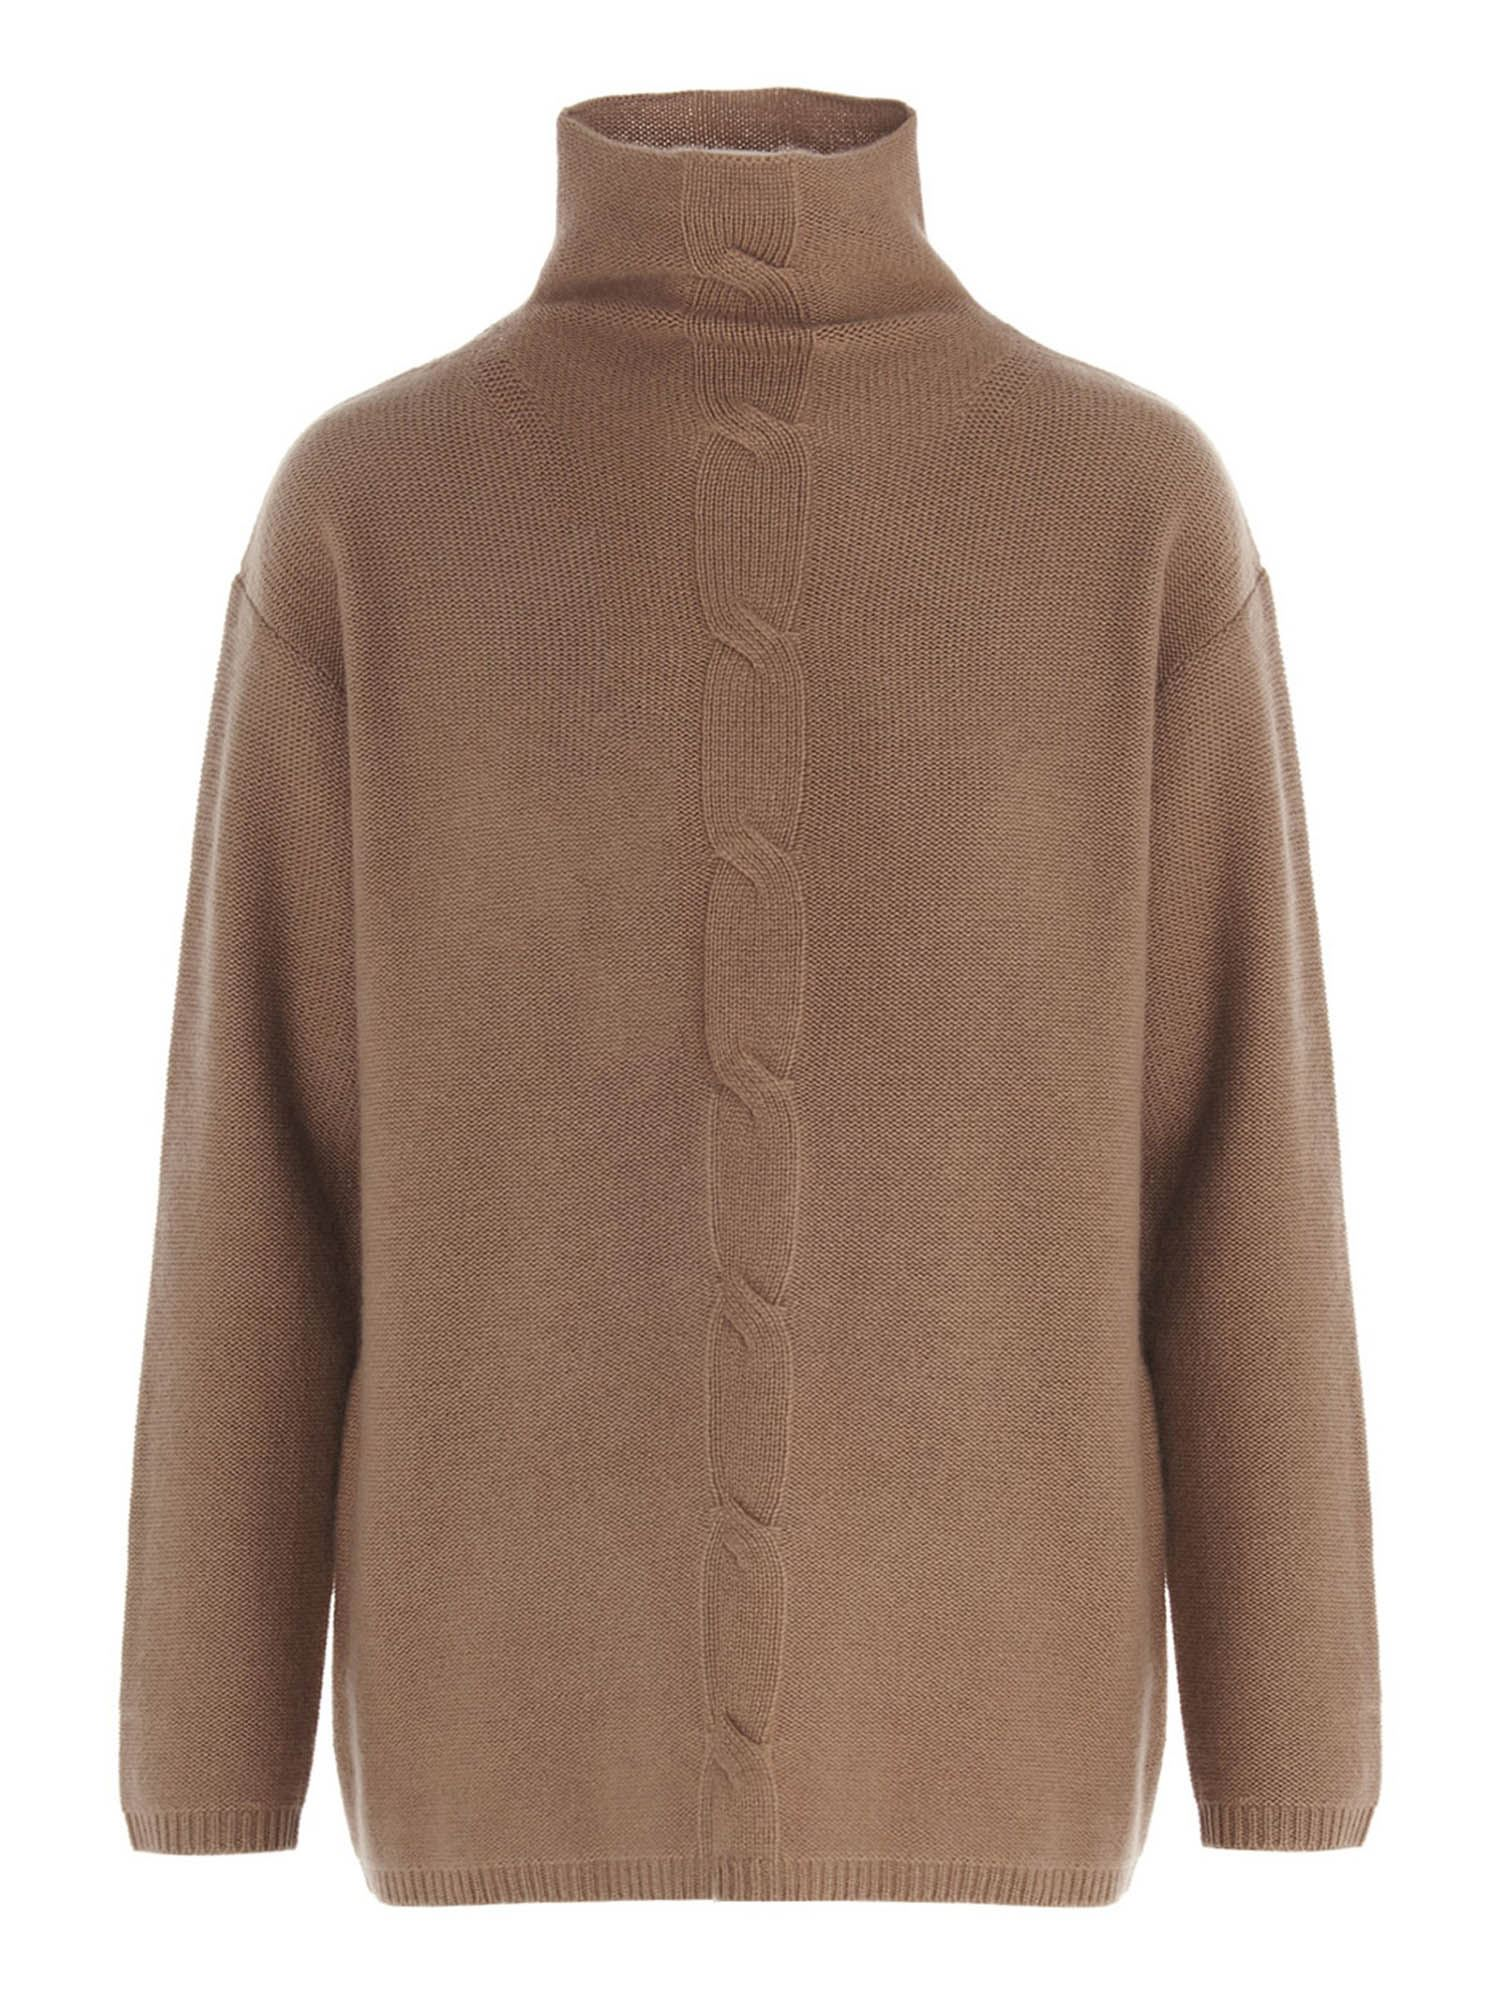 Max Mara CALIGA PULLOVER IN BROWN